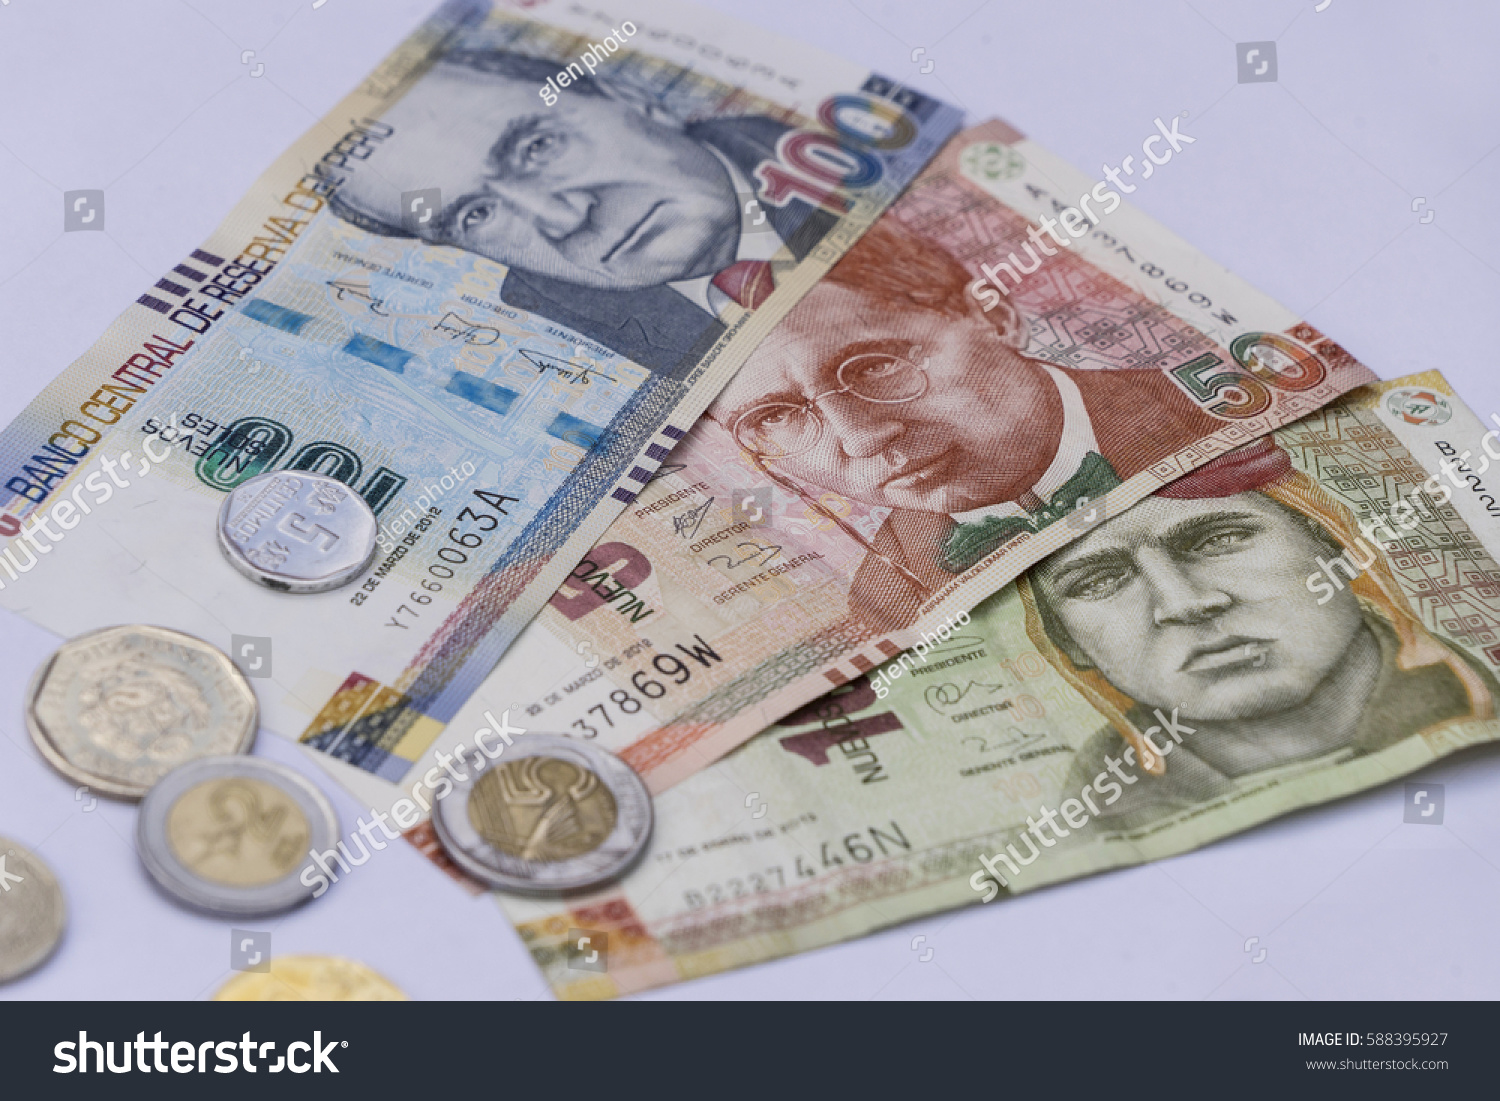 Peruvian bank notes nuevos soles currency stock photo royalty free peruvian bank notes nuevos soles currency from peru money coins altavistaventures Images